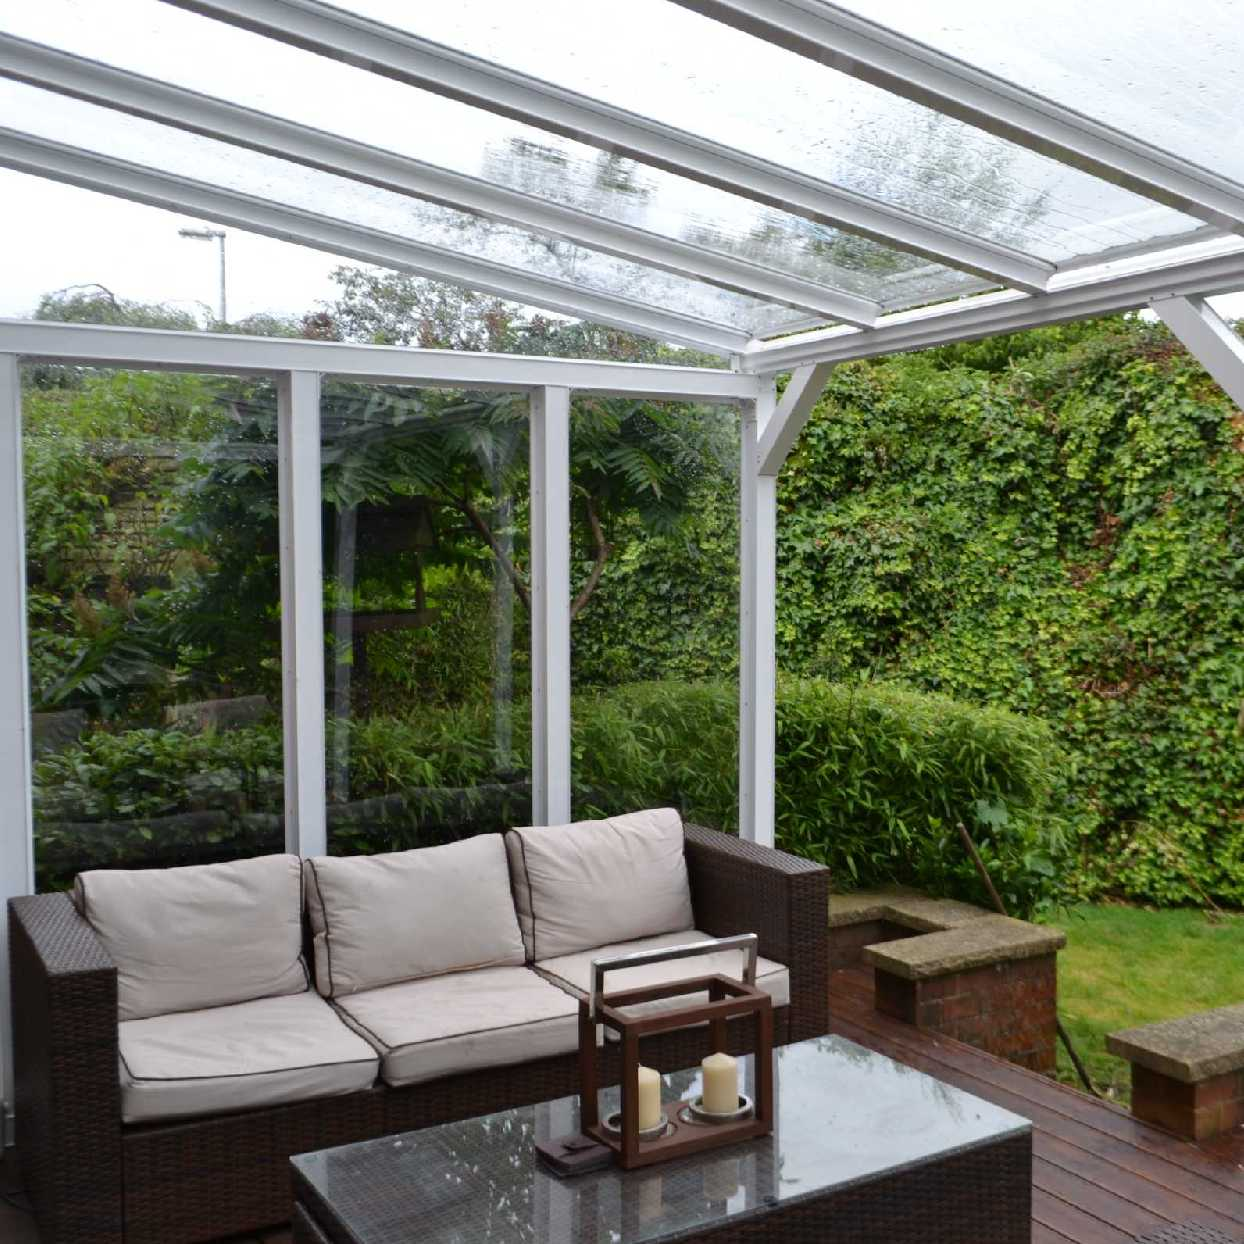 Omega Smart White Lean-To Canopy UNGLAZED for 6mm Glazing - 6.3m (W) x 2.0m (P), (4) Supporting Posts